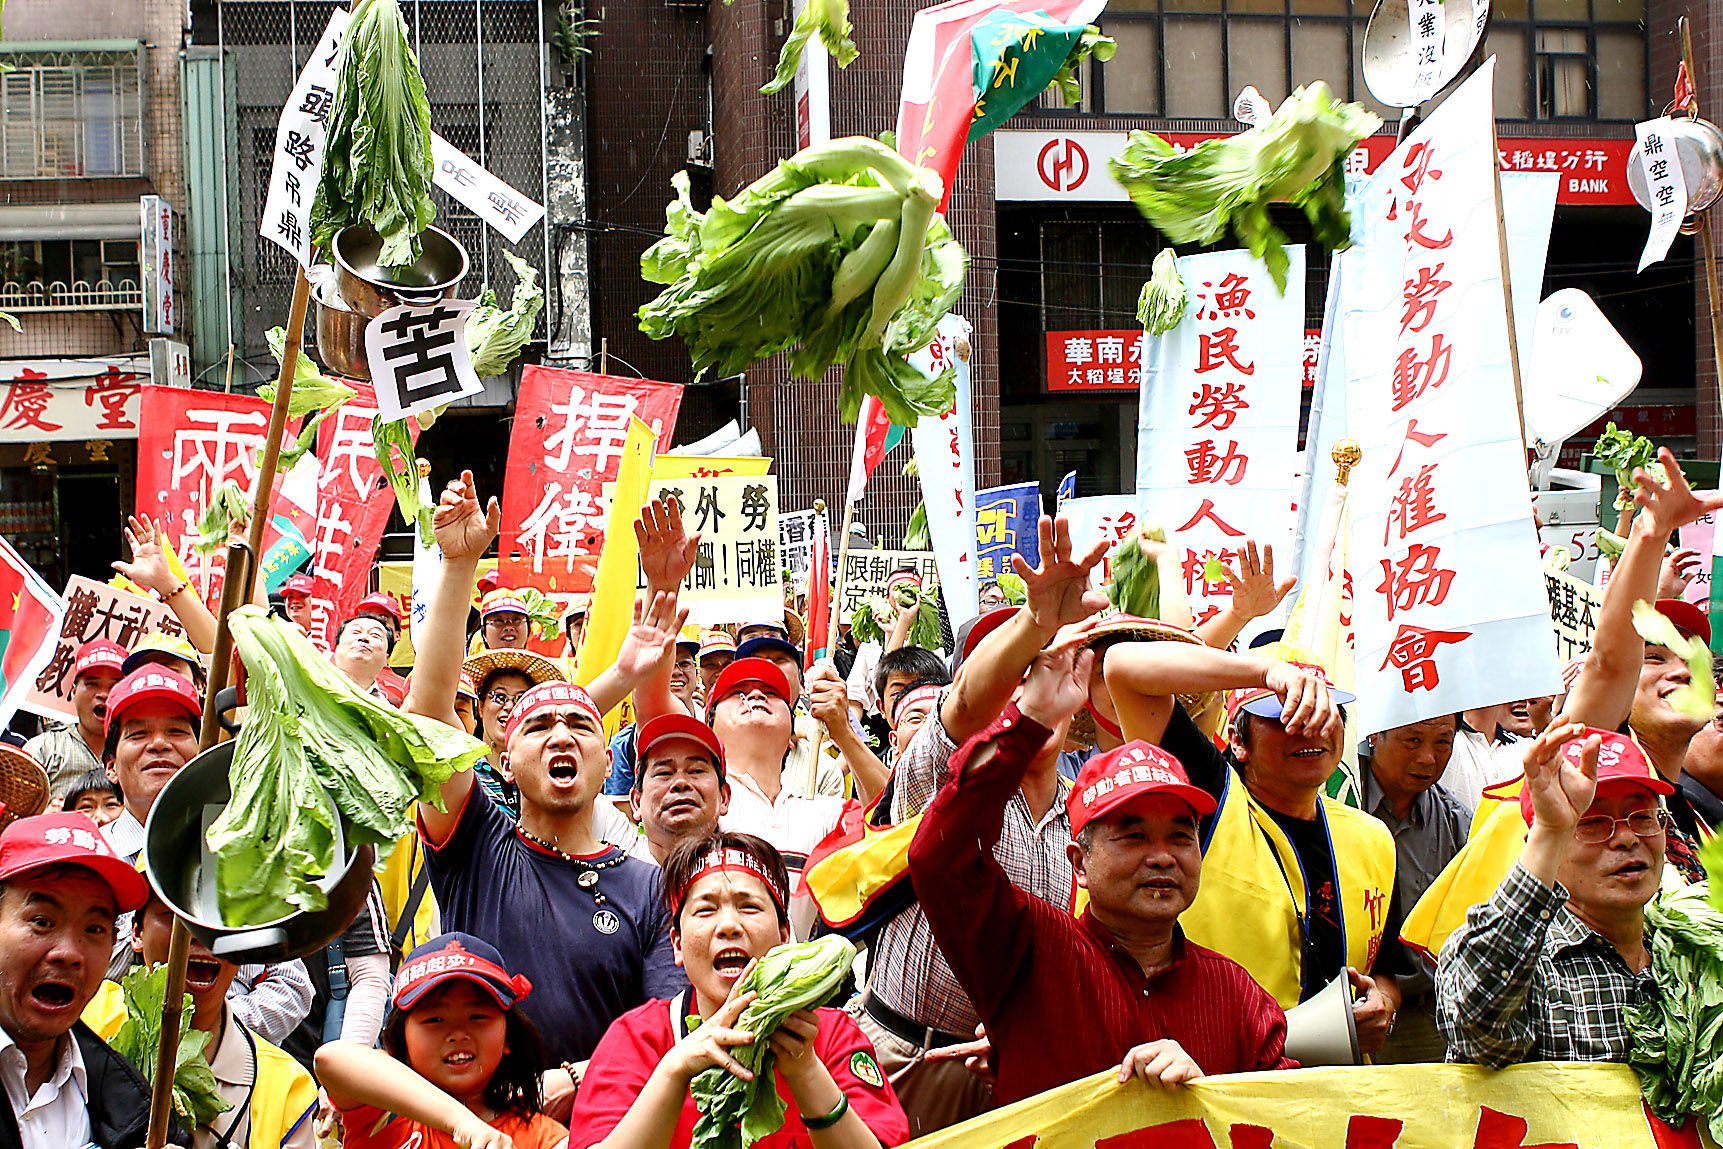 Labor group members throw vegetables at the Council of Labor Affairs, April 29, 2007, in Taipei. Protesters claim the 7.5-9.5% minimum wage increase t...